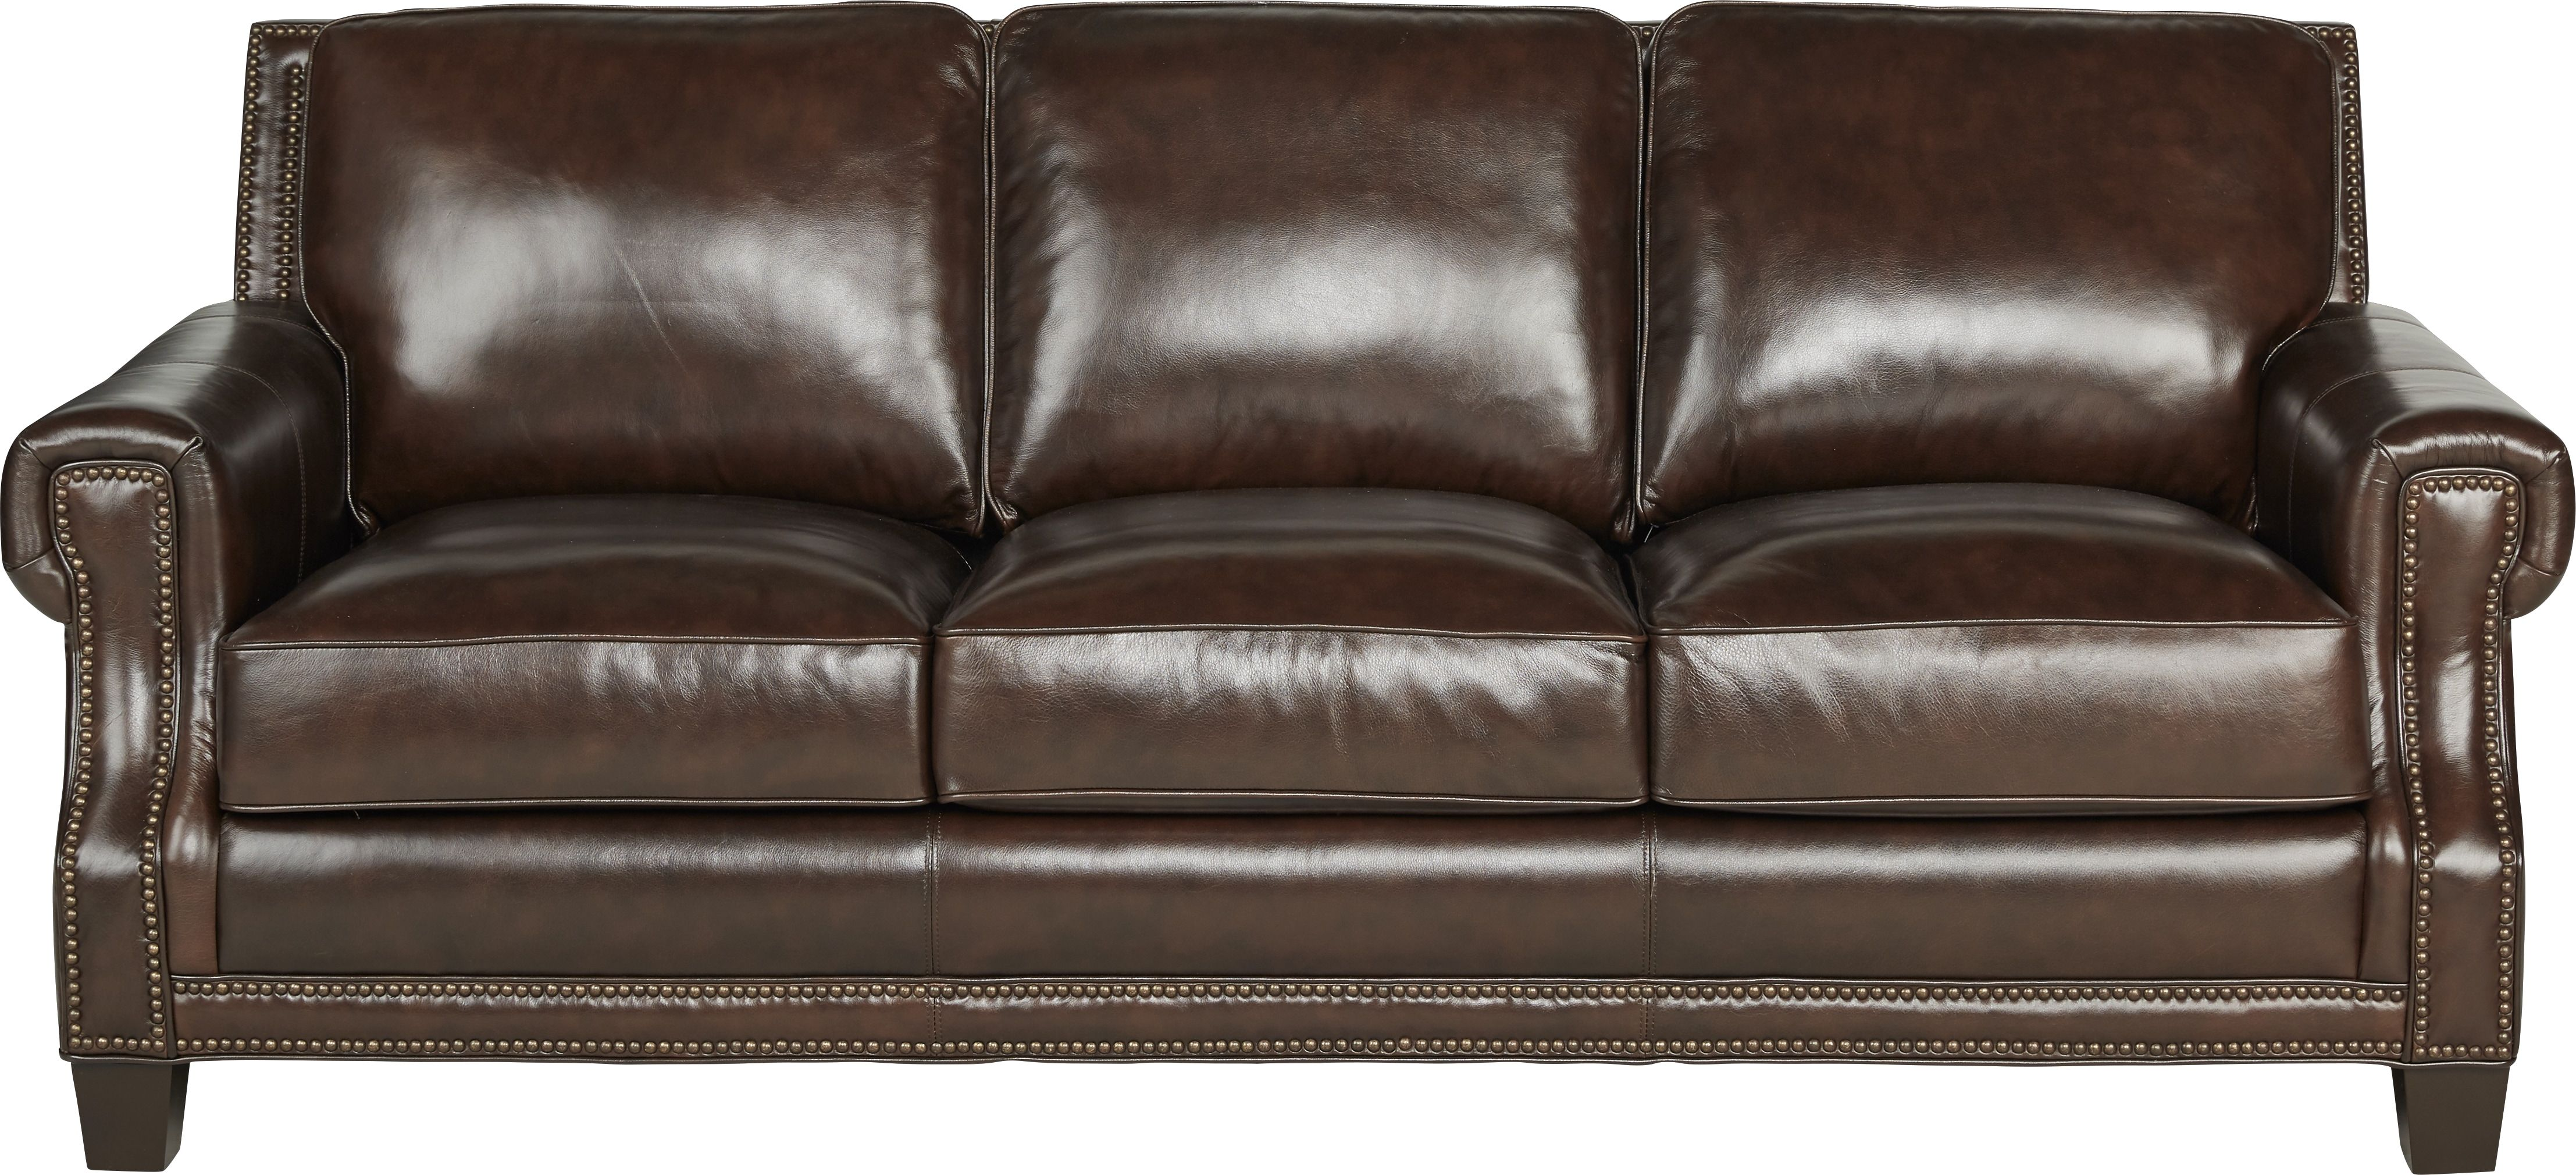 Excellent Vicenza Chocolate Leather Sofa In 2019 Sofa Leather Sofa Ibusinesslaw Wood Chair Design Ideas Ibusinesslaworg